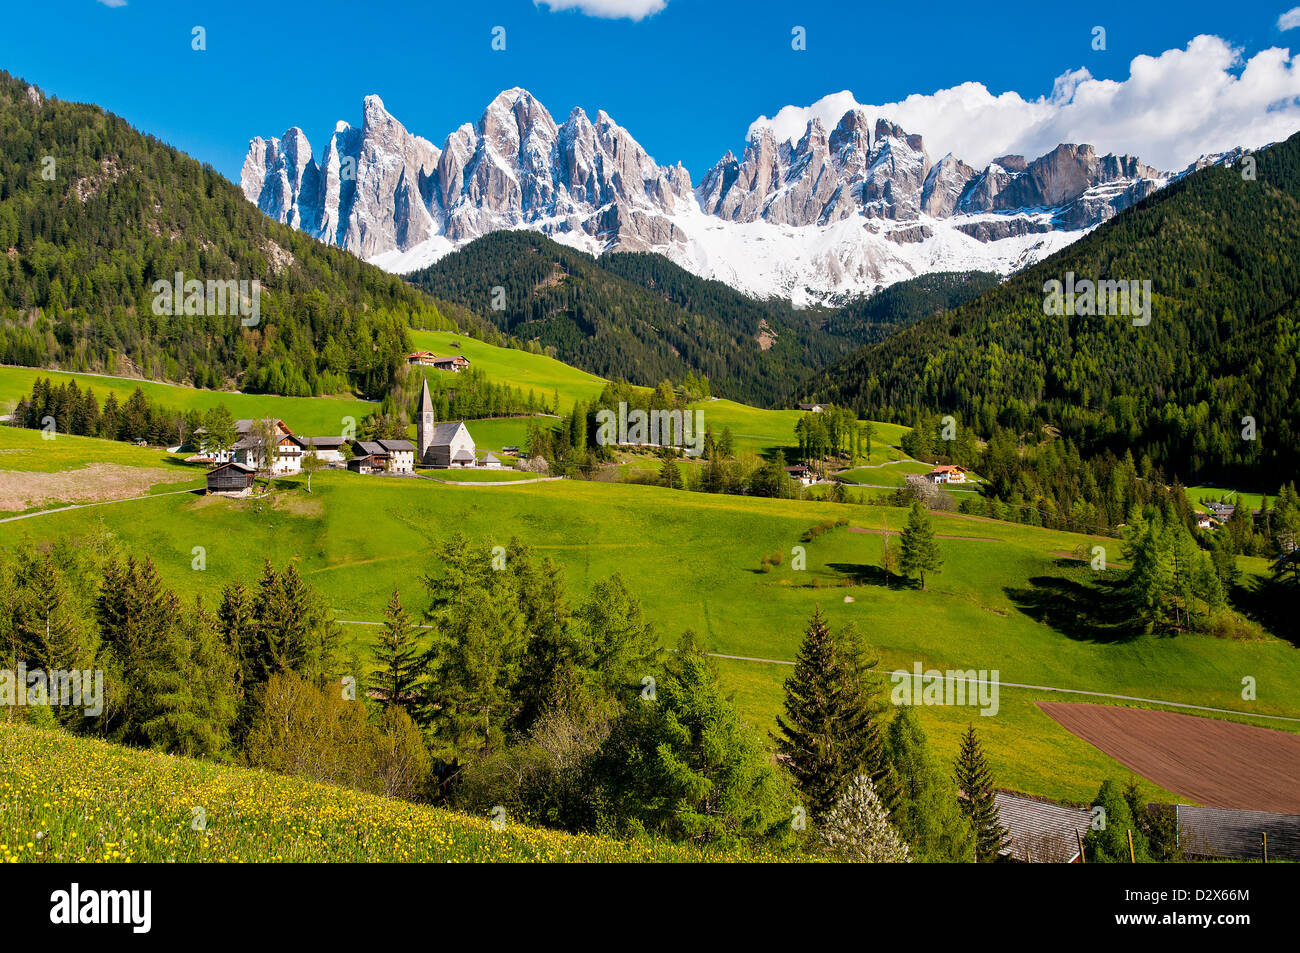 Panoramic view of Funes Valley with snow-capped Odle Dolomites, Alto Adige - South Tyrol, Italy - Stock Image